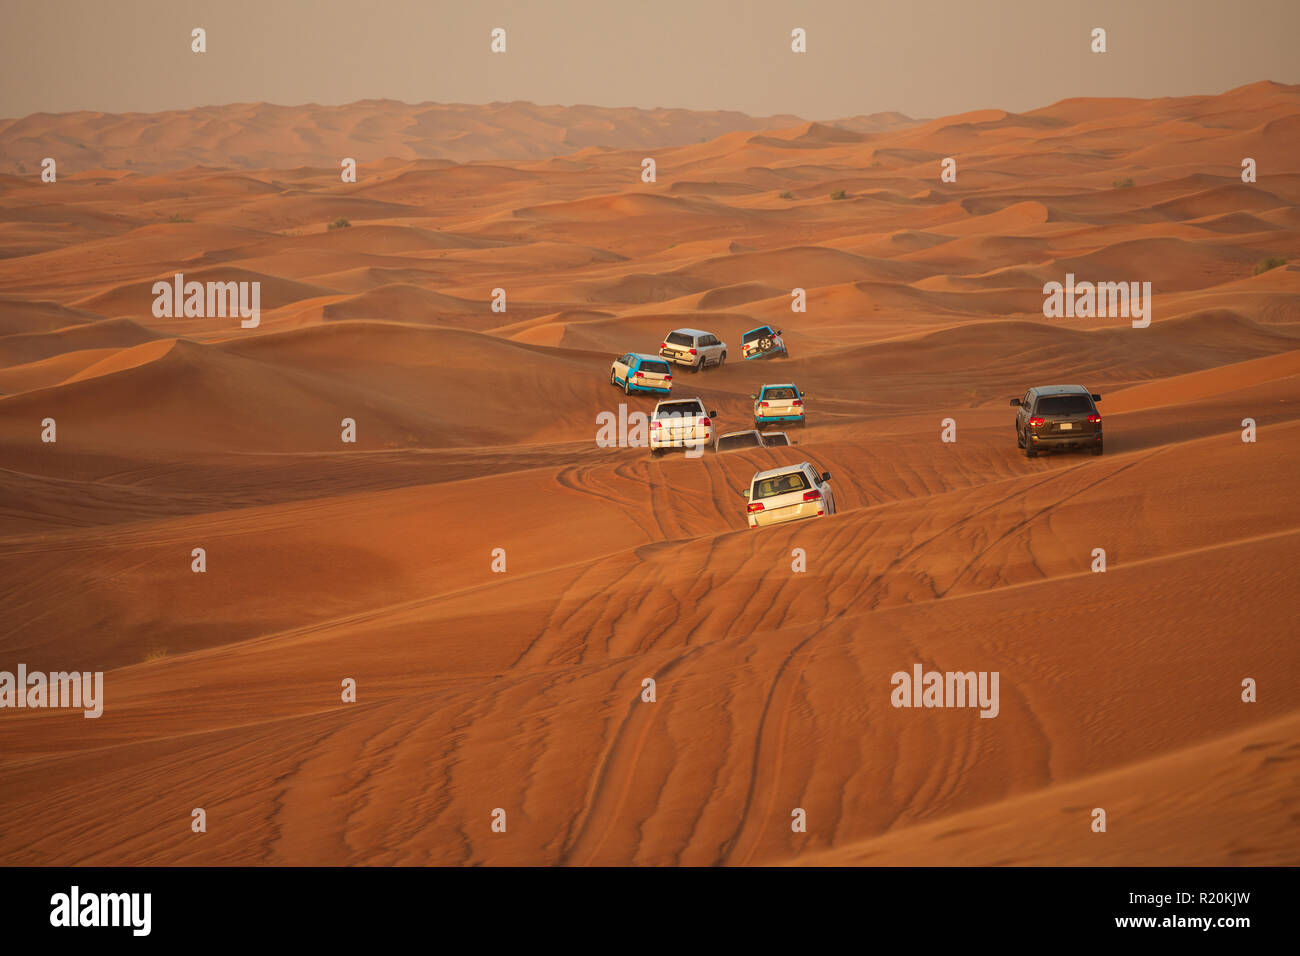 Off-road adventure with SUV driving in Arabian Desert at sunset. Offroad vehicle bashing through sand dunes in Dubai desert. Traditional entertainment - Stock Image